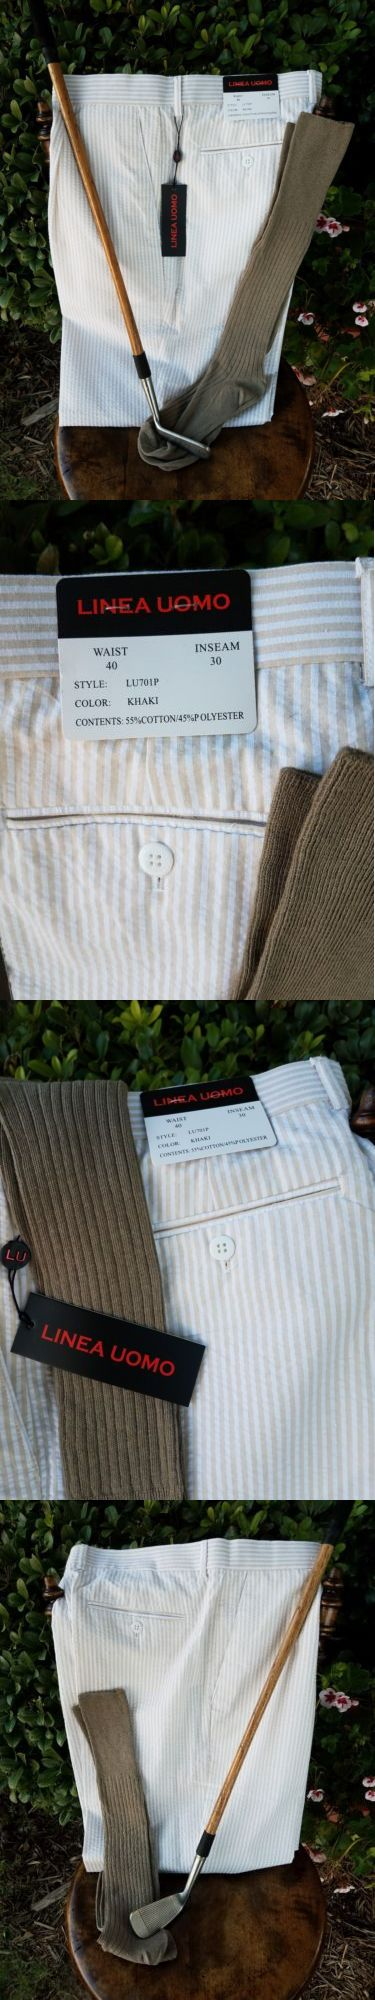 Other Golf Clothing 158939: Golf Knickers 40 New! Linea Uomo!!! Cotton Poly W Lining! New Socks! Nice! -> BUY IT NOW ONLY: $34.95 on eBay!